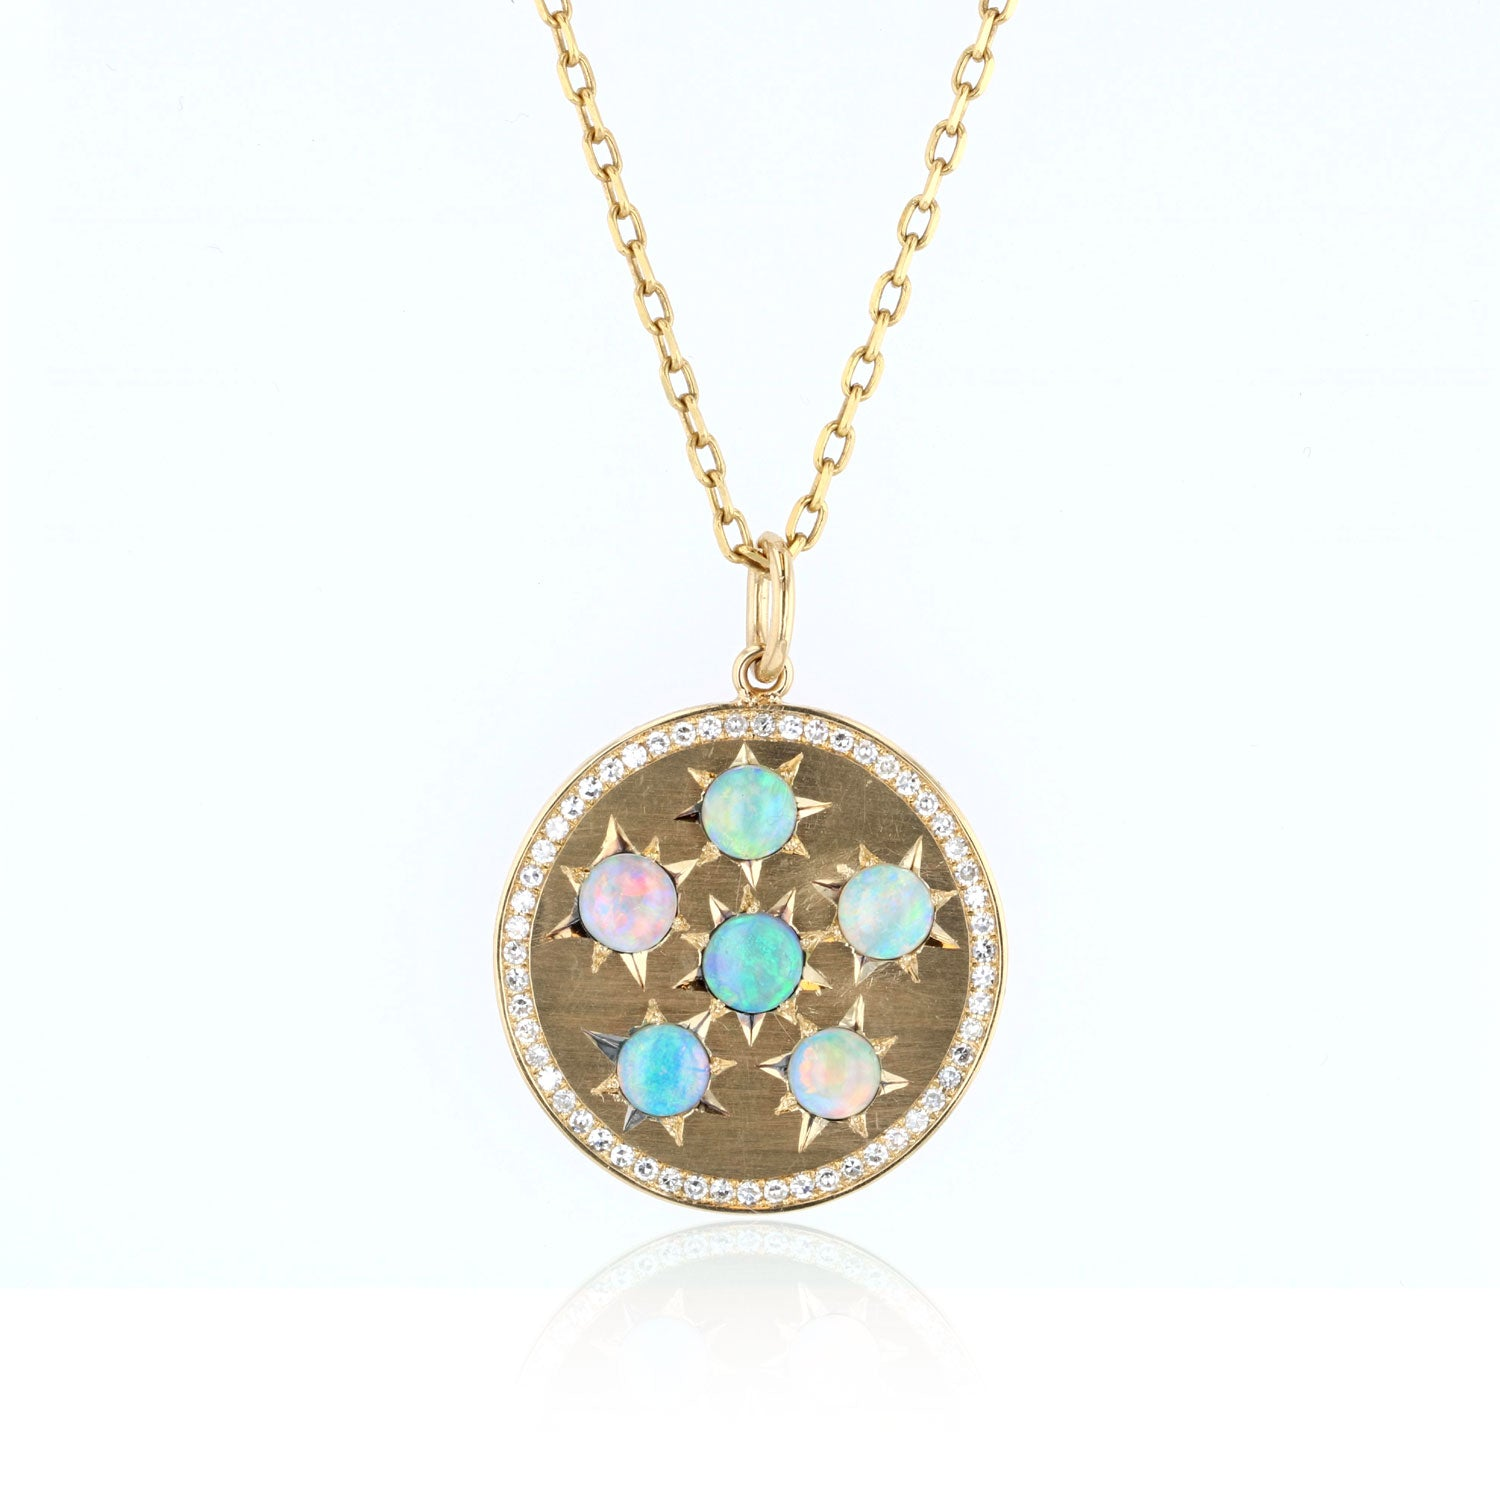 Disk Pendant with Opals And Diamonds  - 18K Yellow Gold